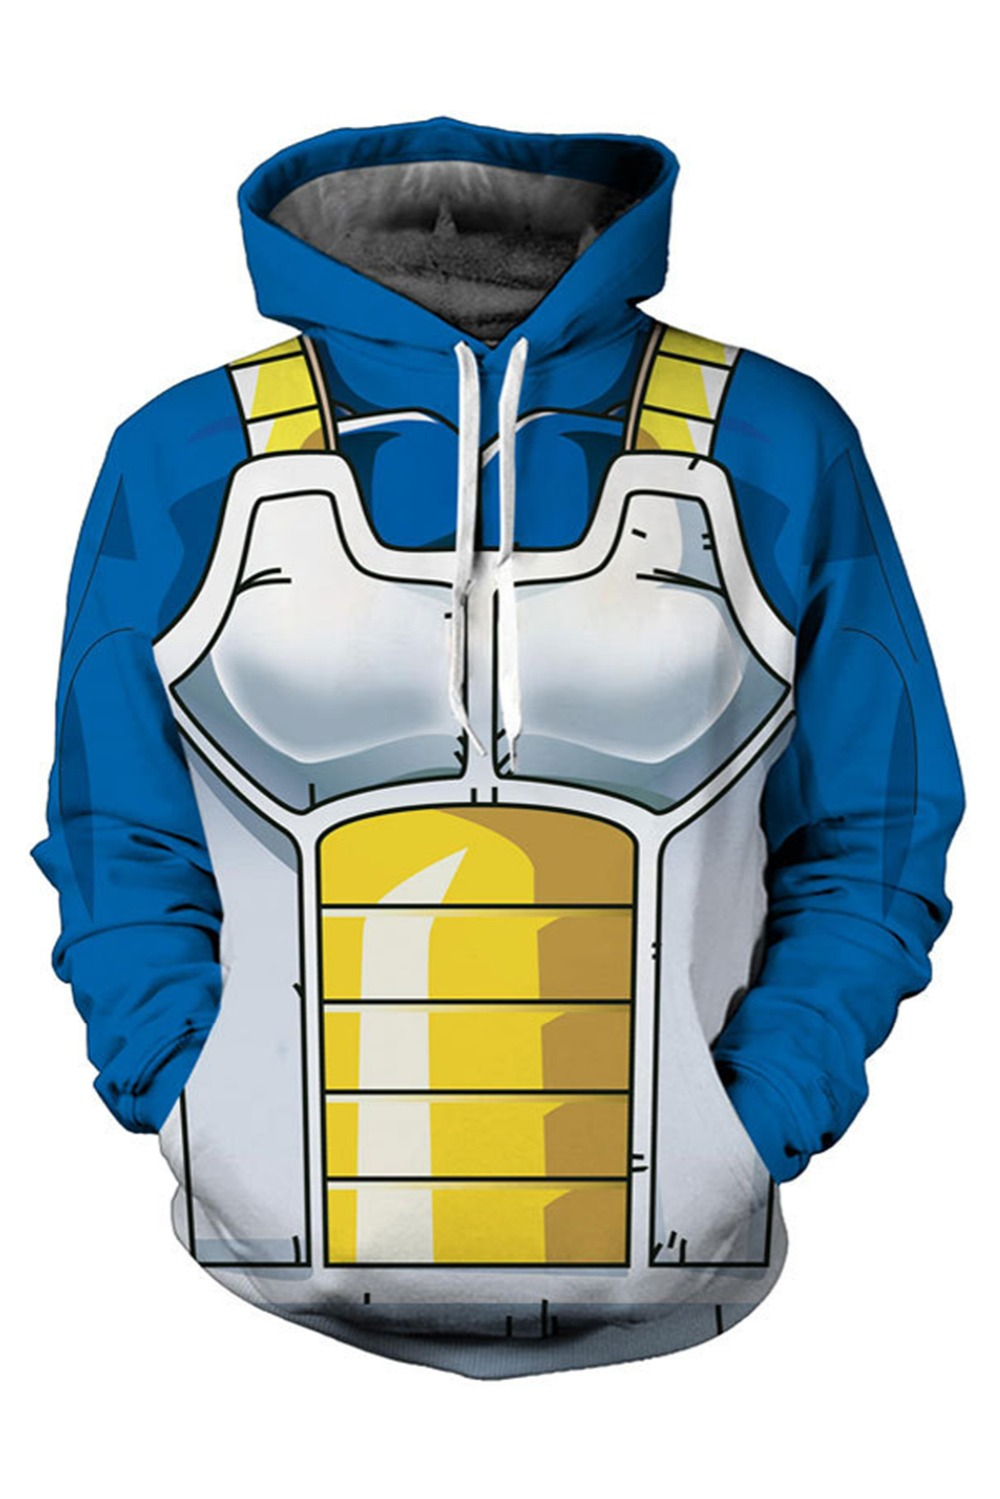 Anime Dragon Ball Hoodies 3D Printed Adult Men Women Sweatshirts Hoodies Goku Cosplay